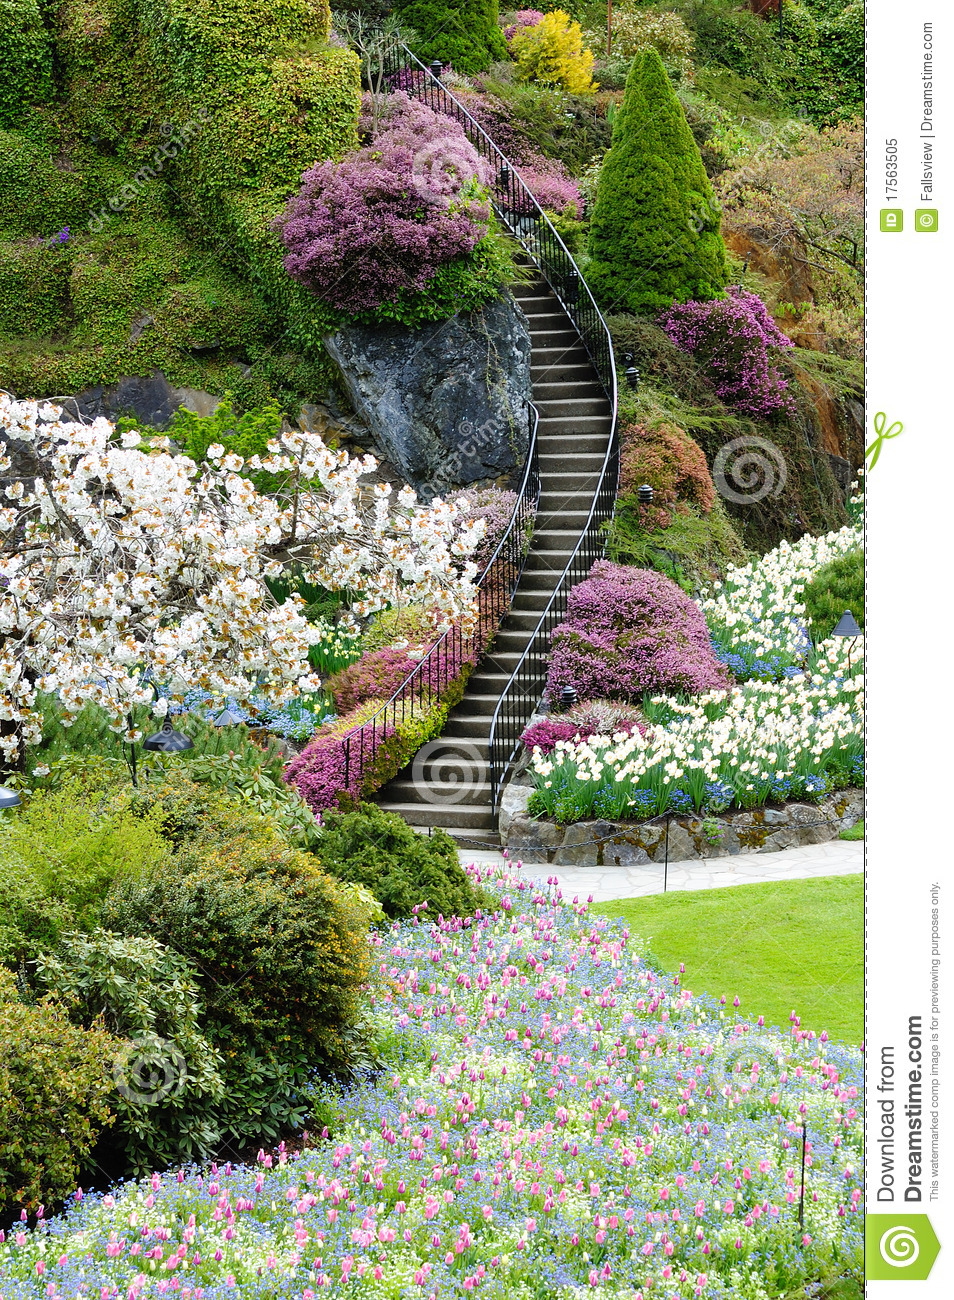 Free Beautiful Garden Wallpapers: Stair In Garden Royalty Free Stock Photo